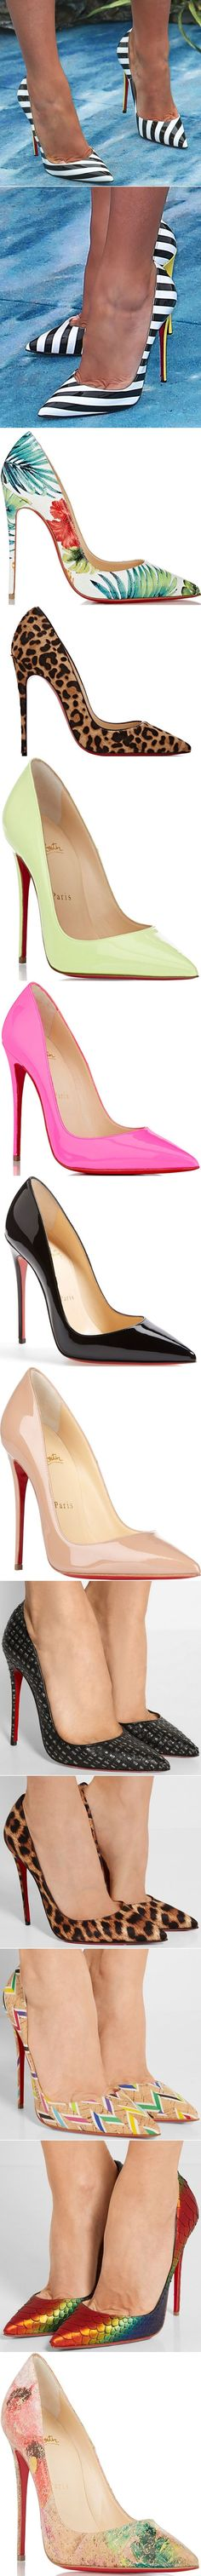 "Blake's pumps are the Christian Louboutin ""So Kate"" pumps. They are made of black and white striped patent leather material and feature pointed toes and contrasting yellow heels."